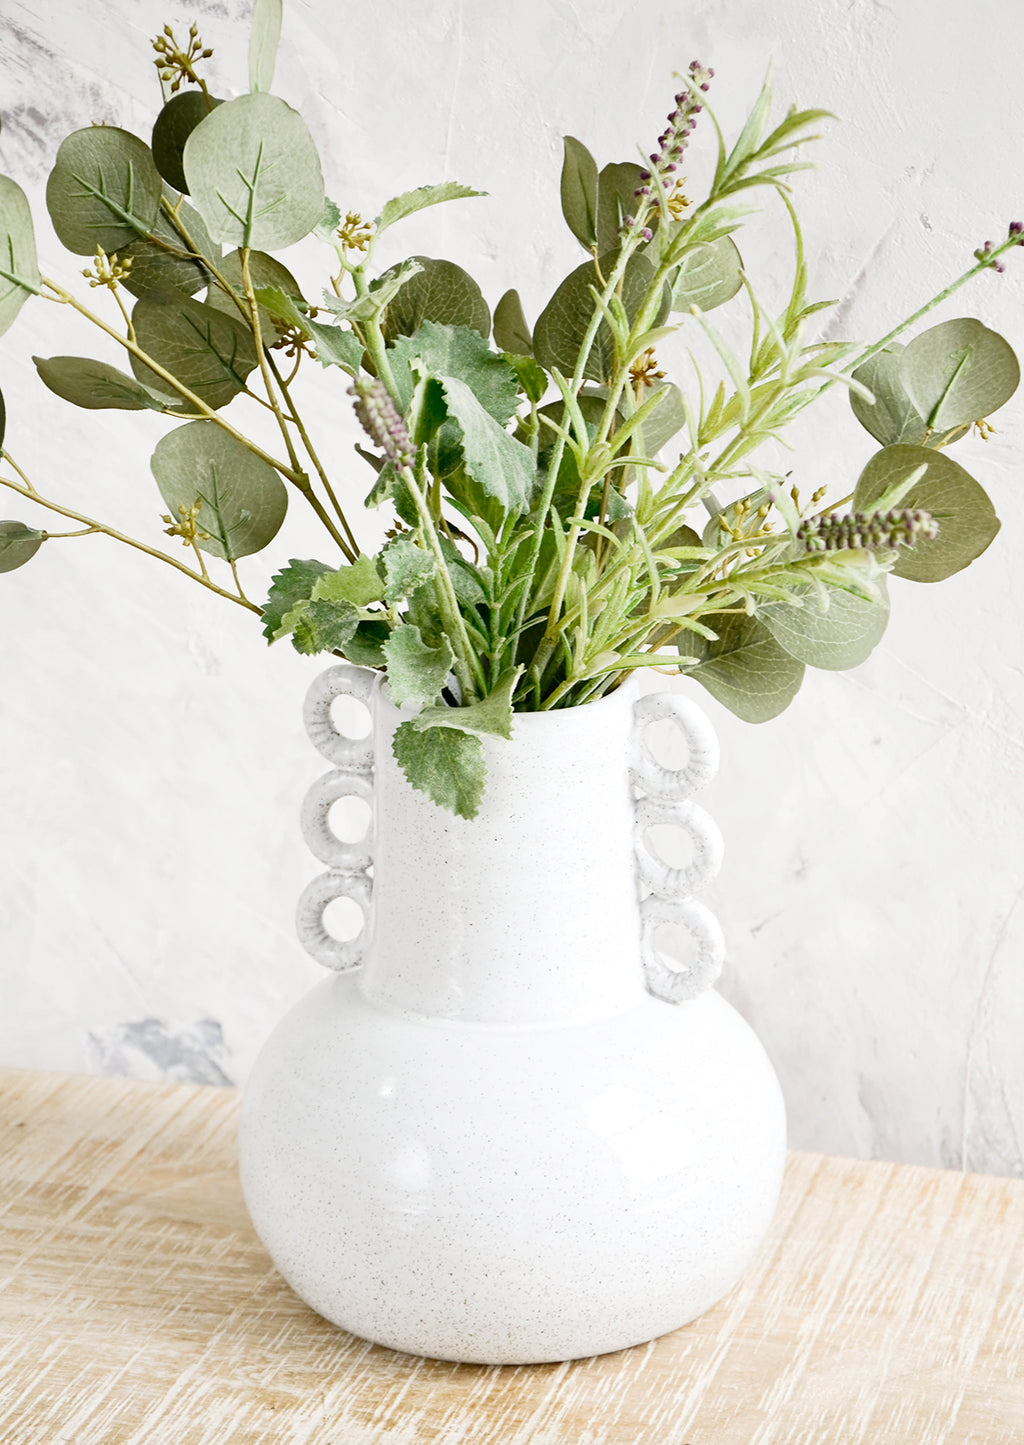 2: Large sculptural white ceramic vase on a rustic table with a mix of herbs & eucalyptus